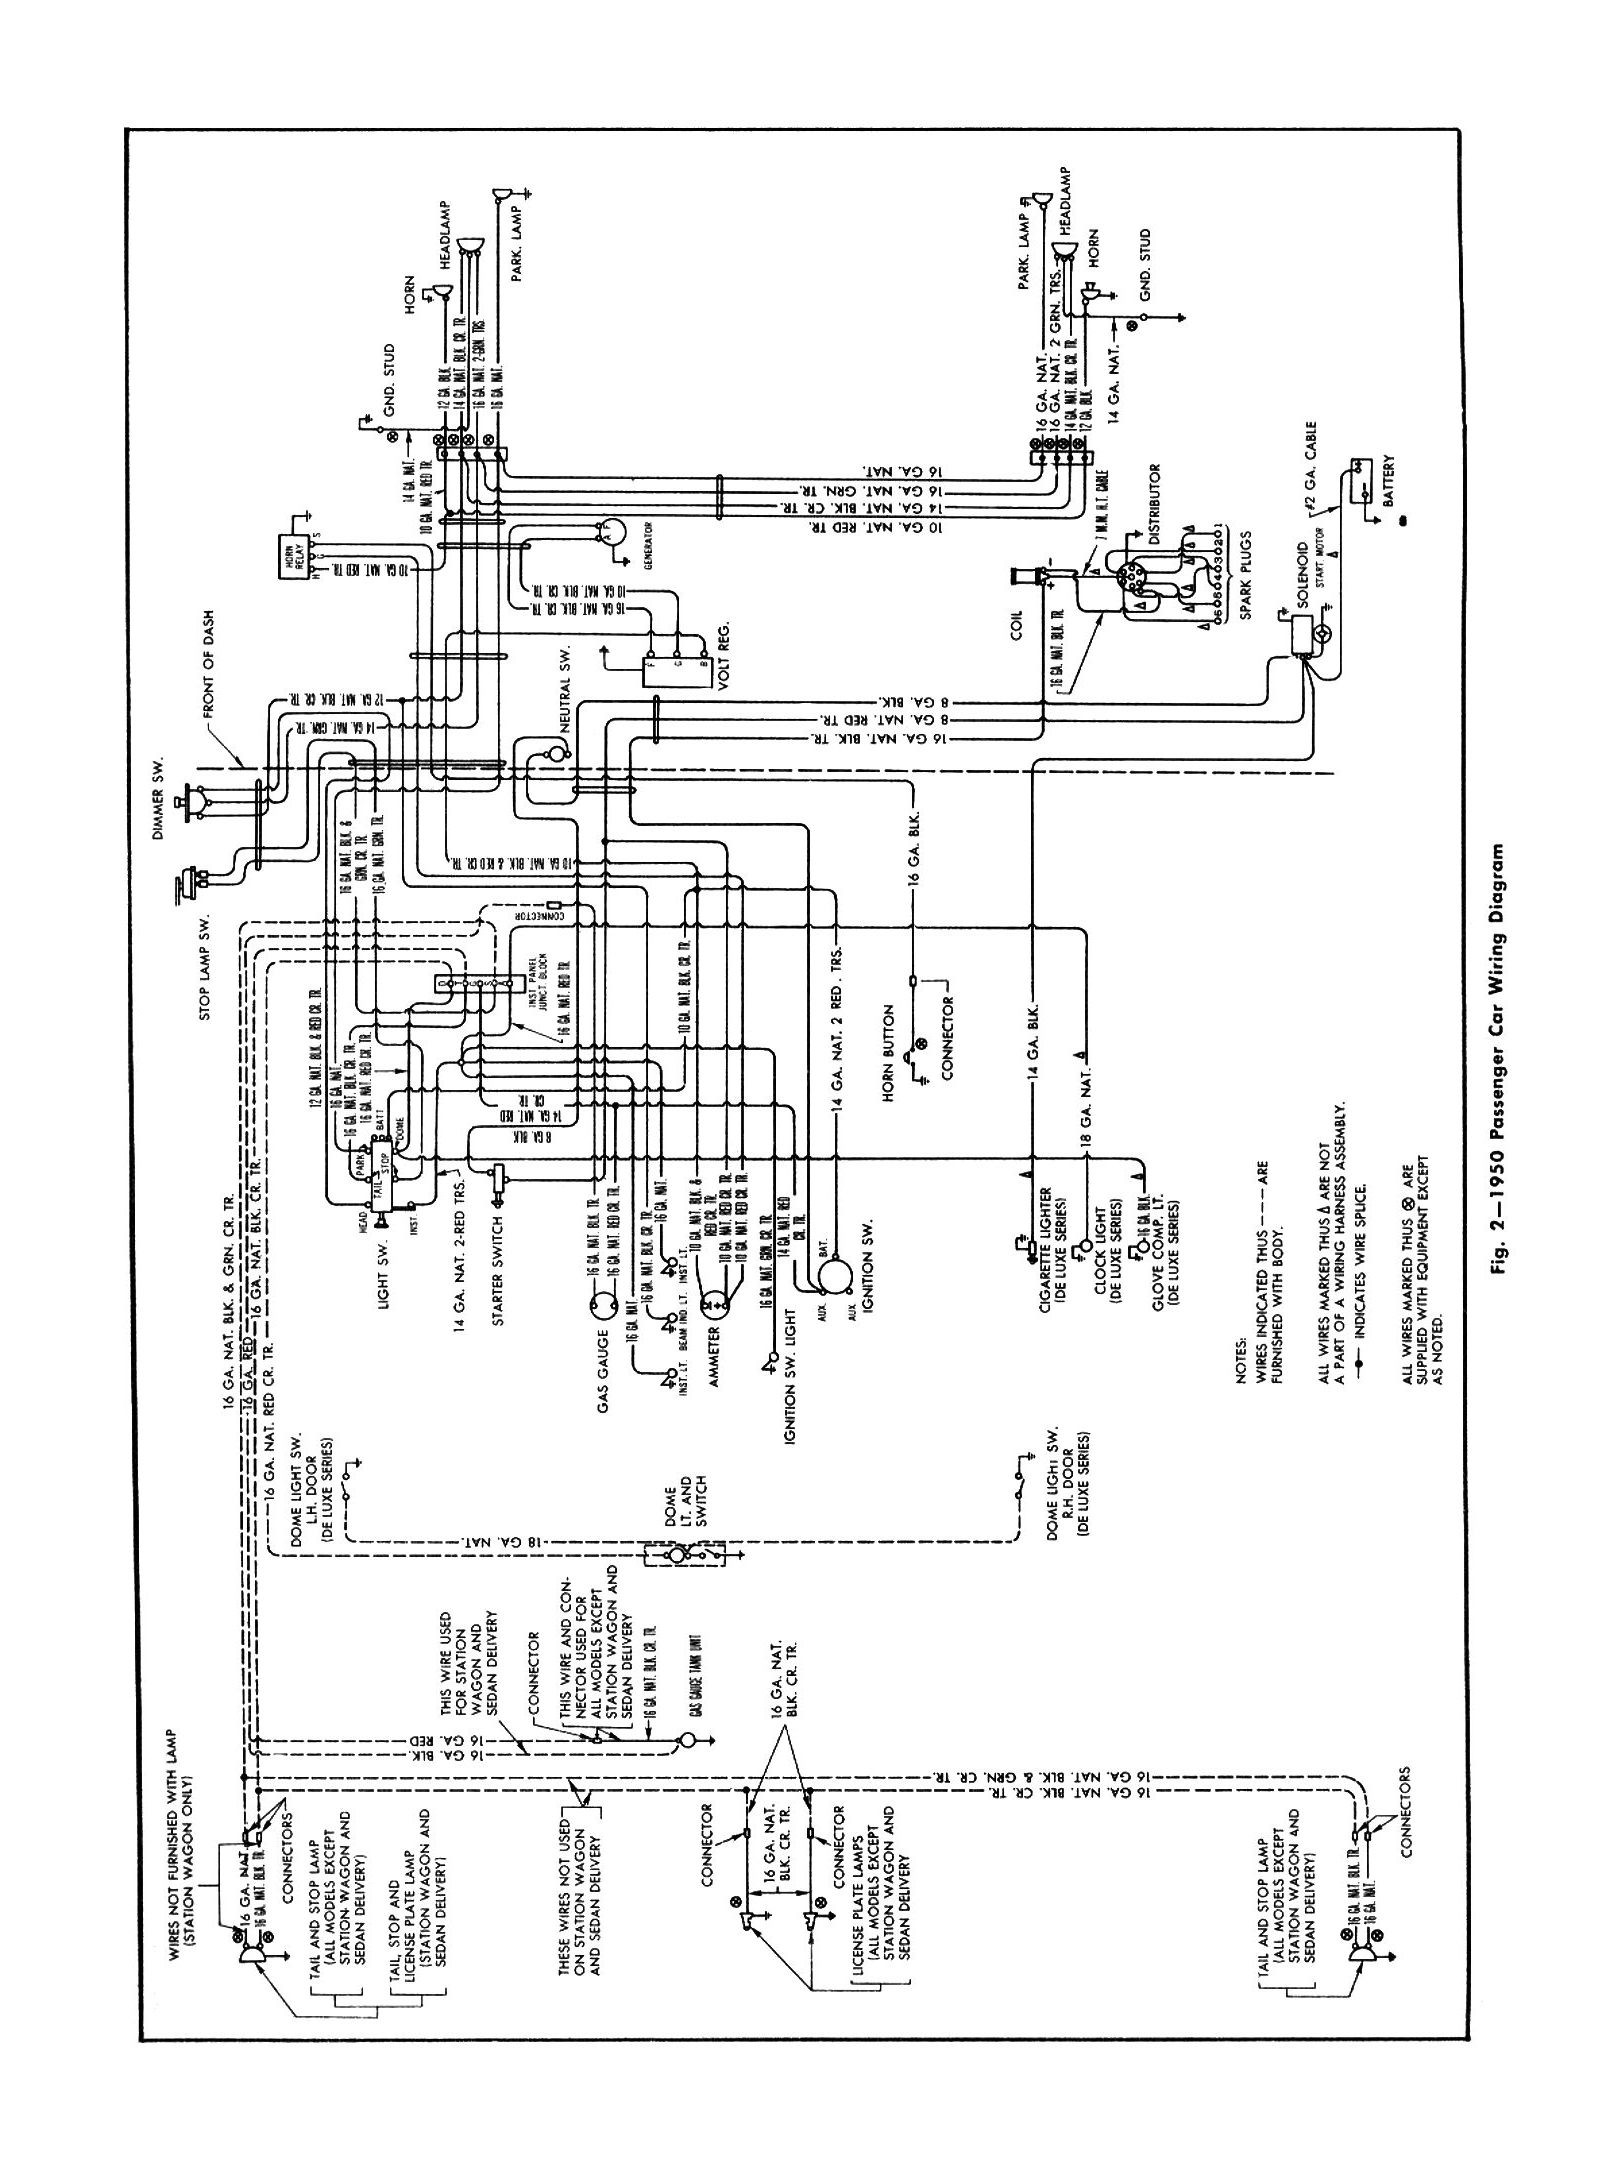 50car chevy wiring diagrams 1953 chevy bel air wiring diagram at suagrazia.org